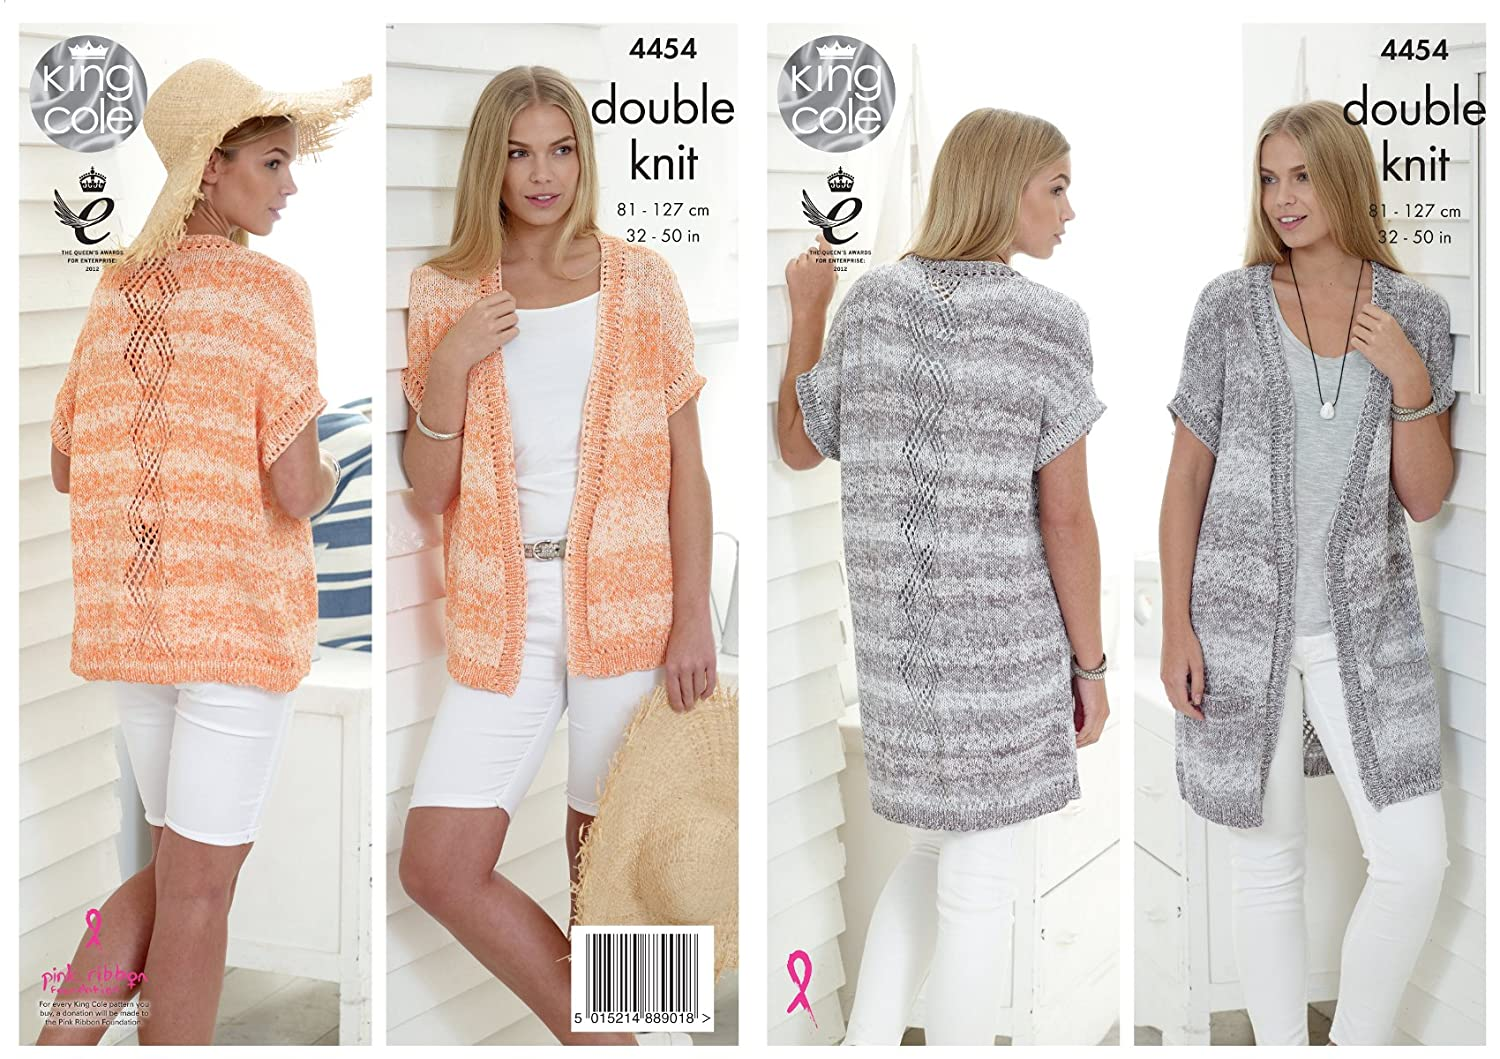 King Cole Ladies Double Knitting Pattern Womens Lace Effect Short or Long Waistcoats Vogue DK (4454)